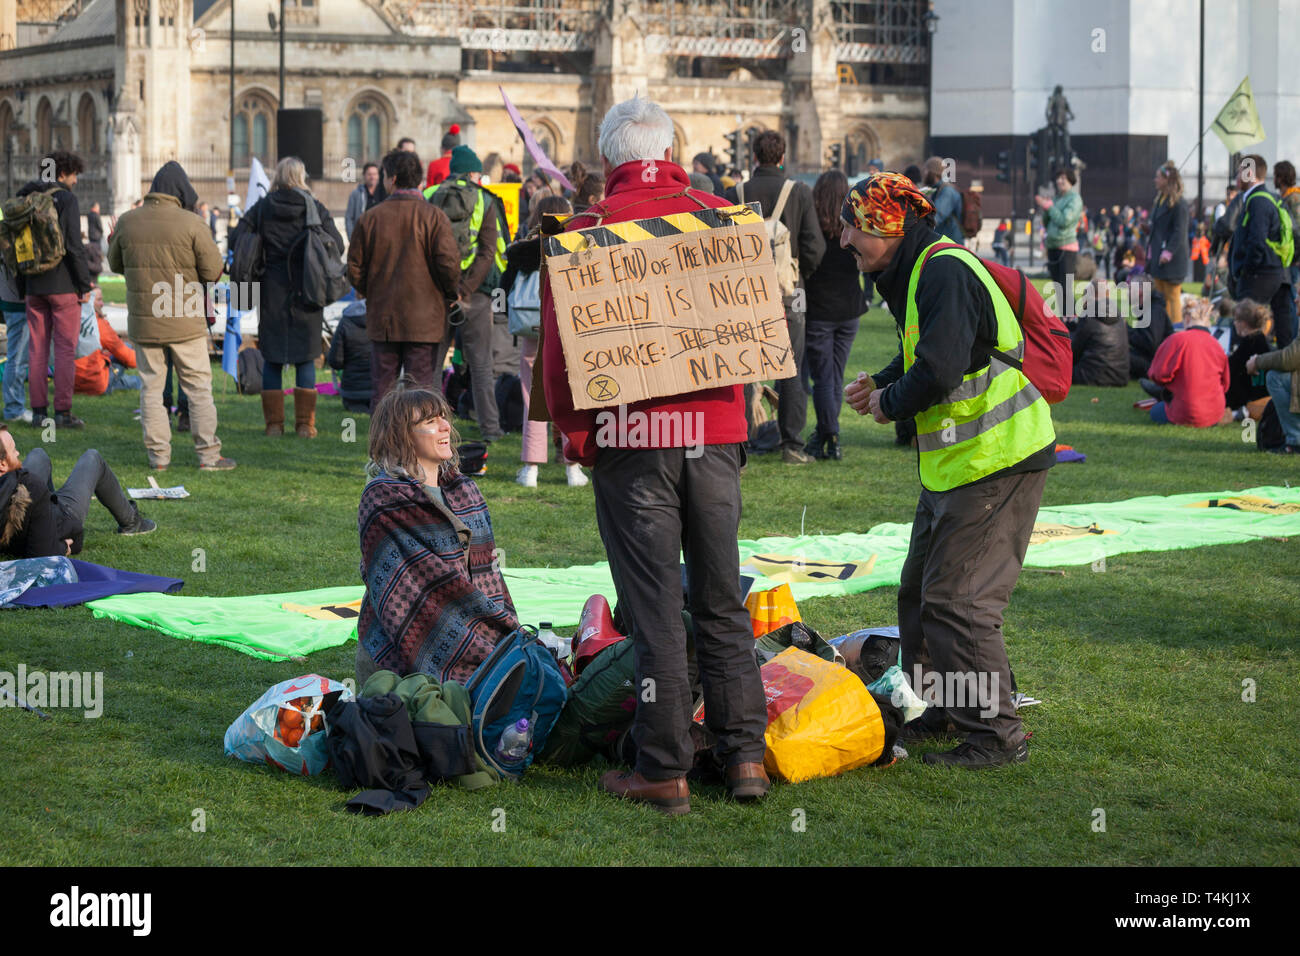 Protestors with banners congregate on Parliament Square, Westminster for the Extinction Rebellion demonstration - Stock Image